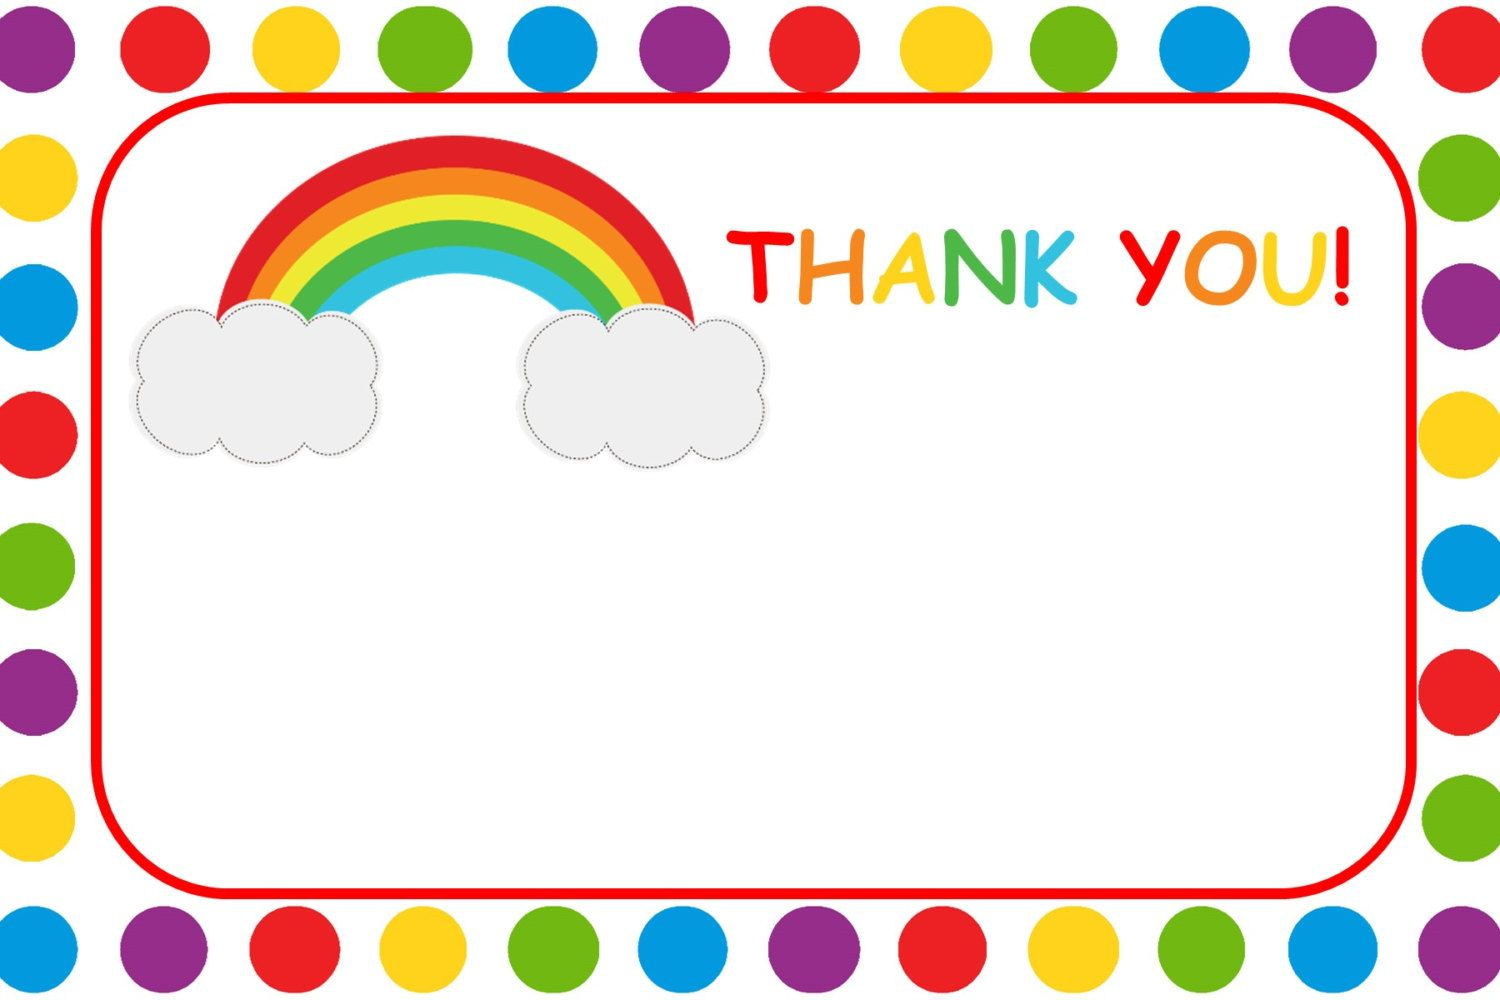 Thank You Card Clipart at GetDrawings.com.